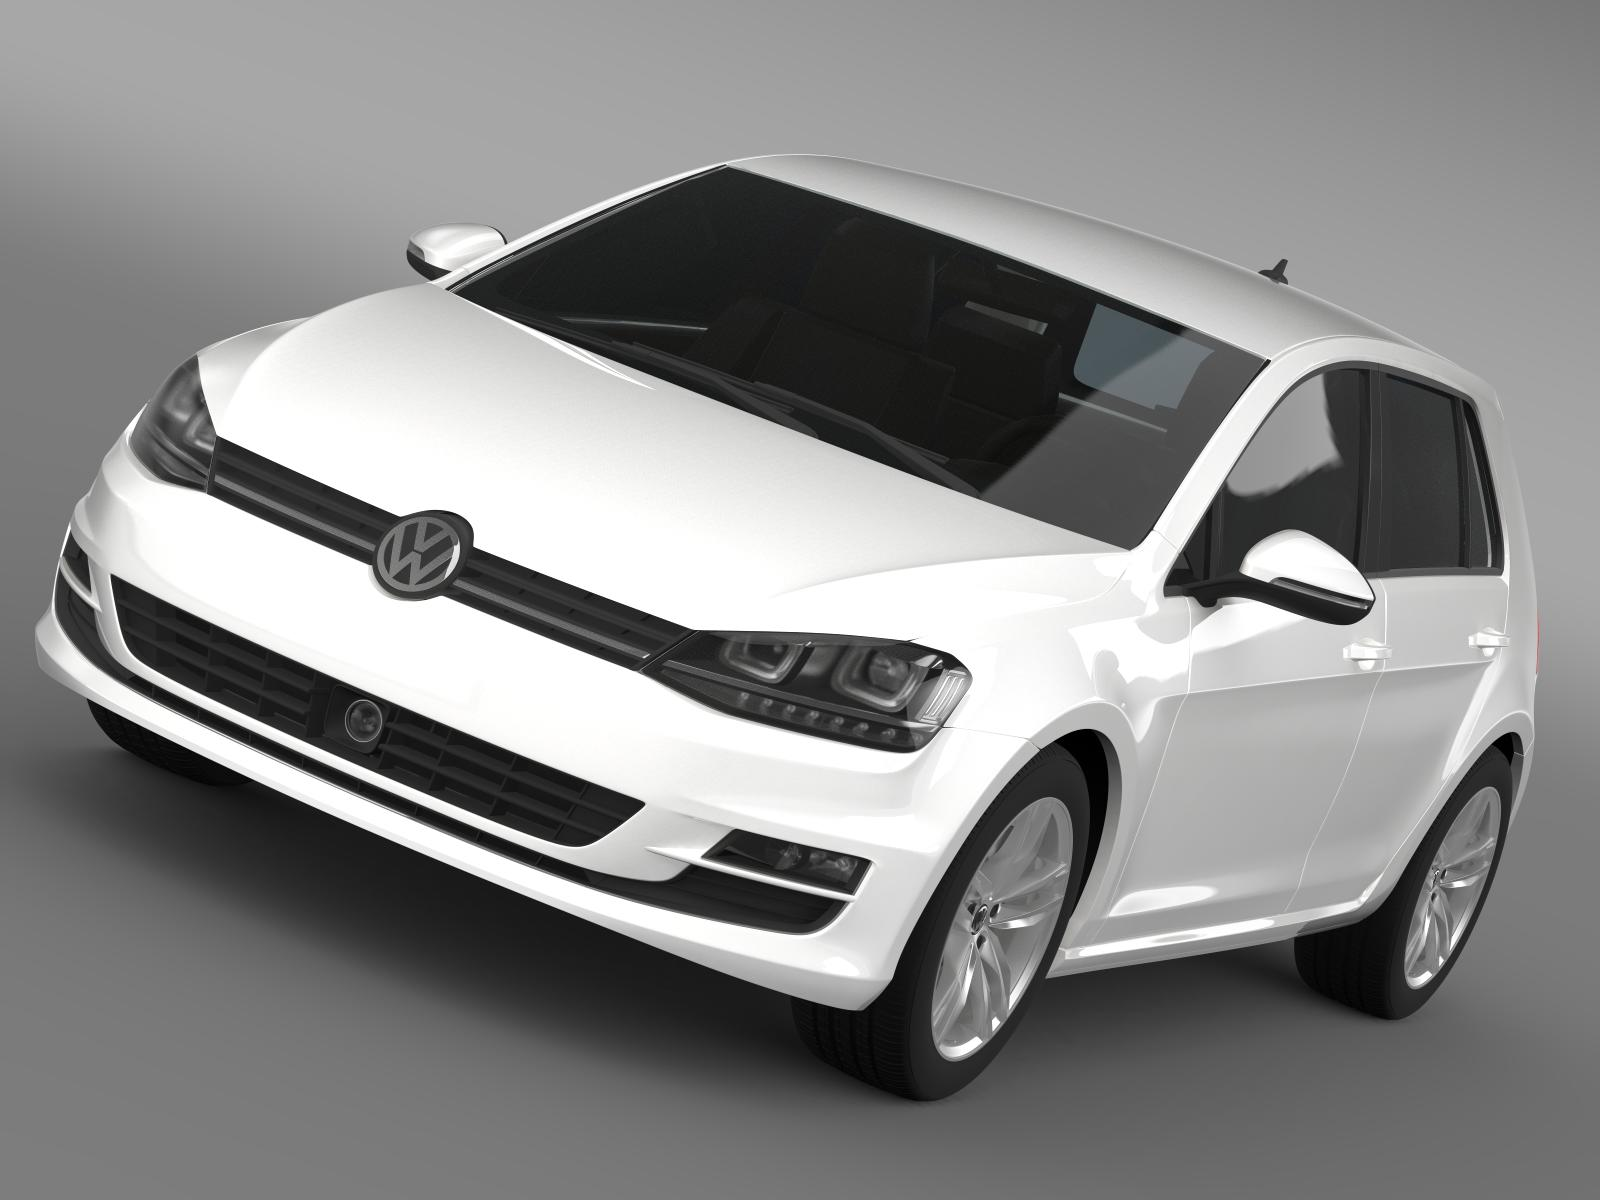 vw golf tdi 4motion 5d typ 5g 2012 3d model 3ds max fbx c4d lwo ma mb hrc xsi obj 165047